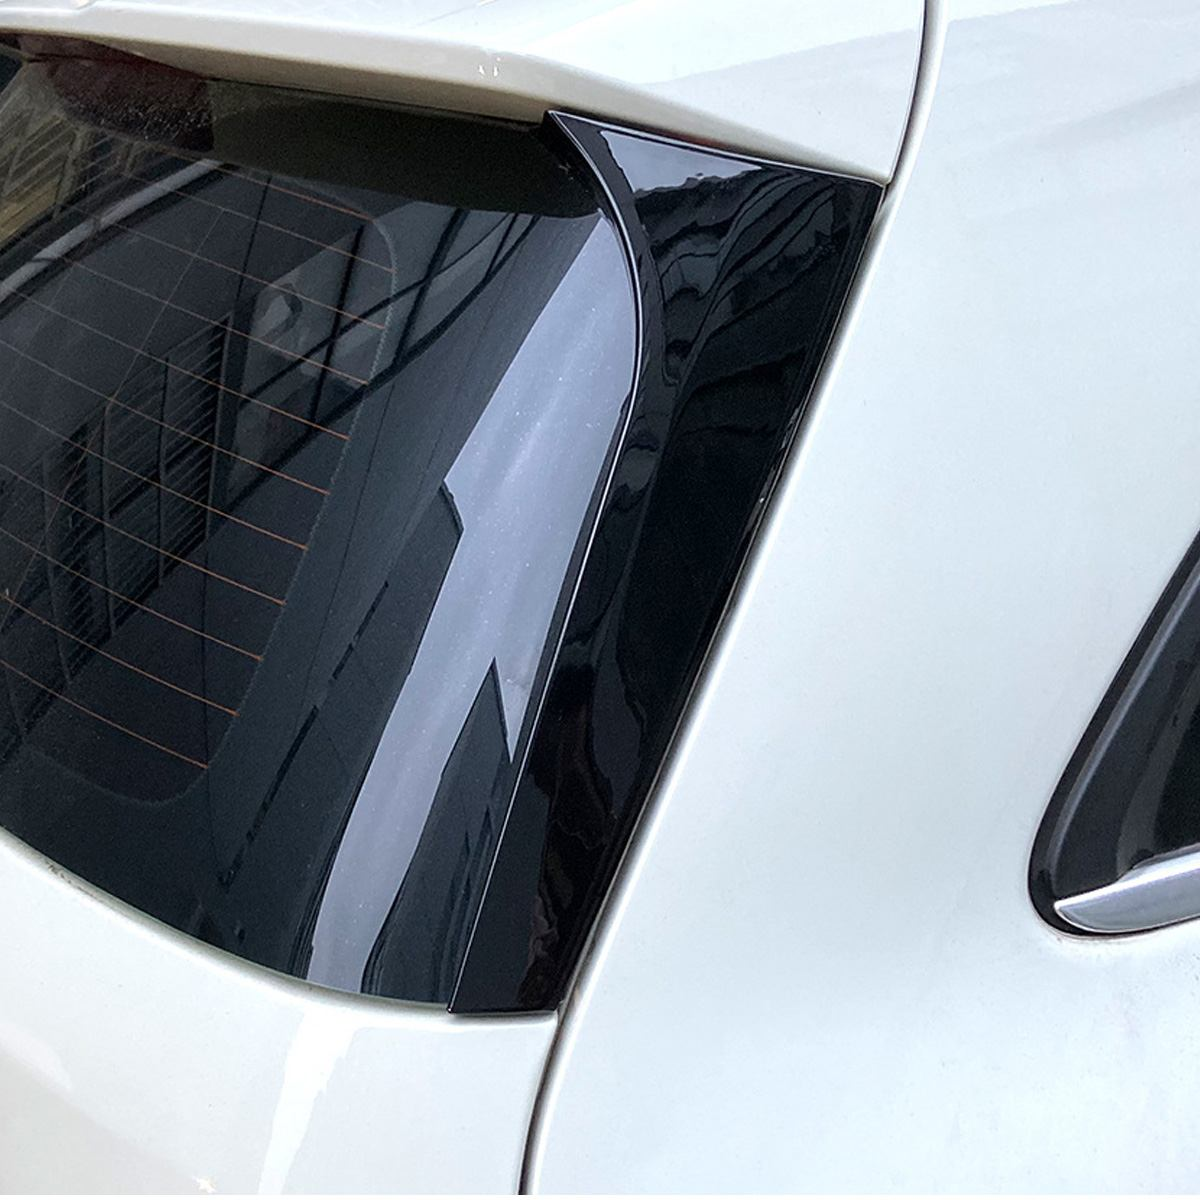 Gloss Black Rear Window Side Spoiler Canard Canards Splitter For <font><b>Mercedes</b></font> for Benz B Class <font><b>W246</b></font> B180 <font><b>B200</b></font> 2012 2013-2018 Pair image